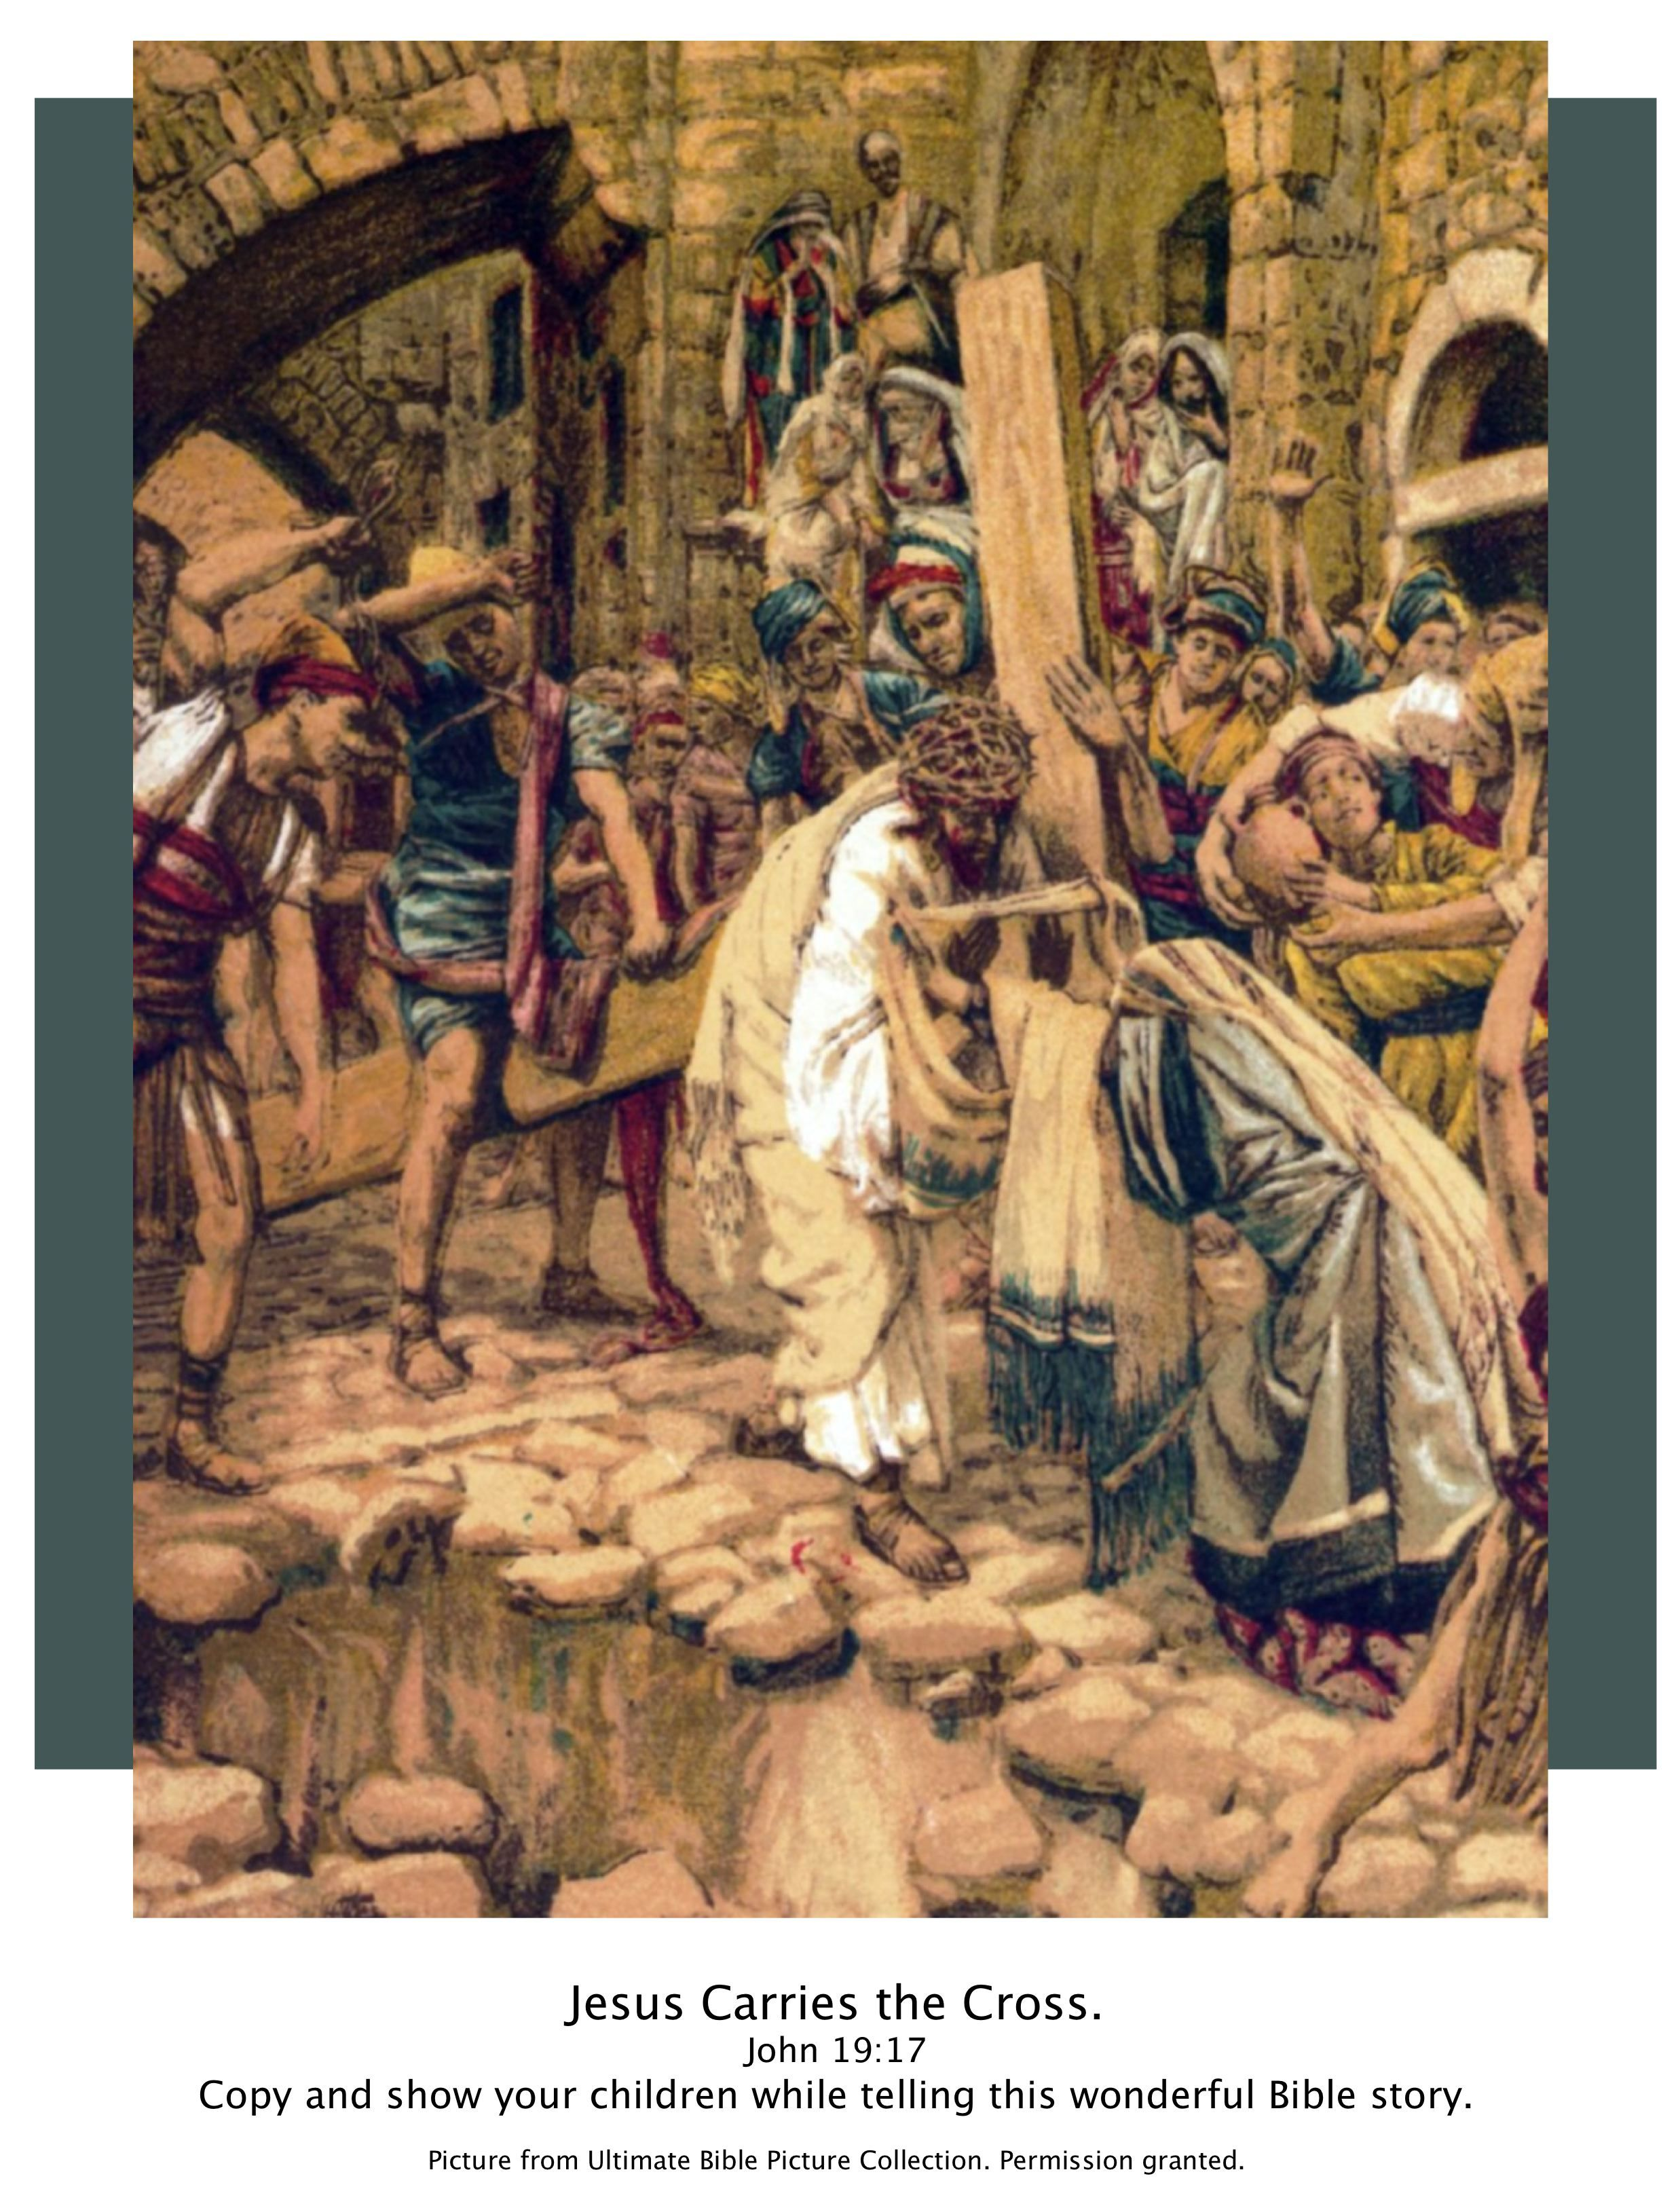 bible story picture of jesus carrying cross john 19 17 show your